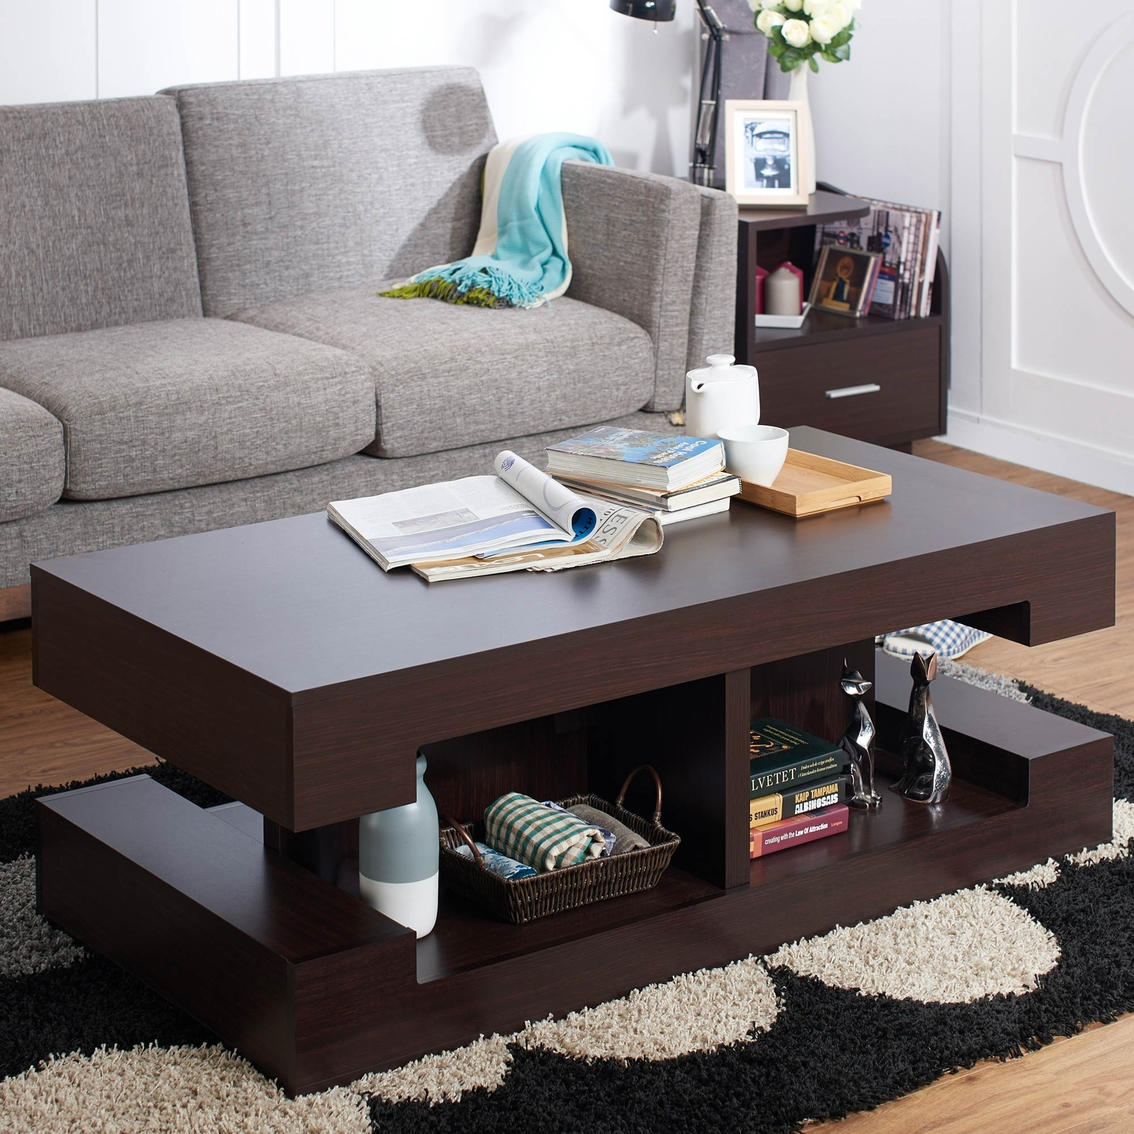 Furniture of america antella coffee table living room for Hometown furniture exchange